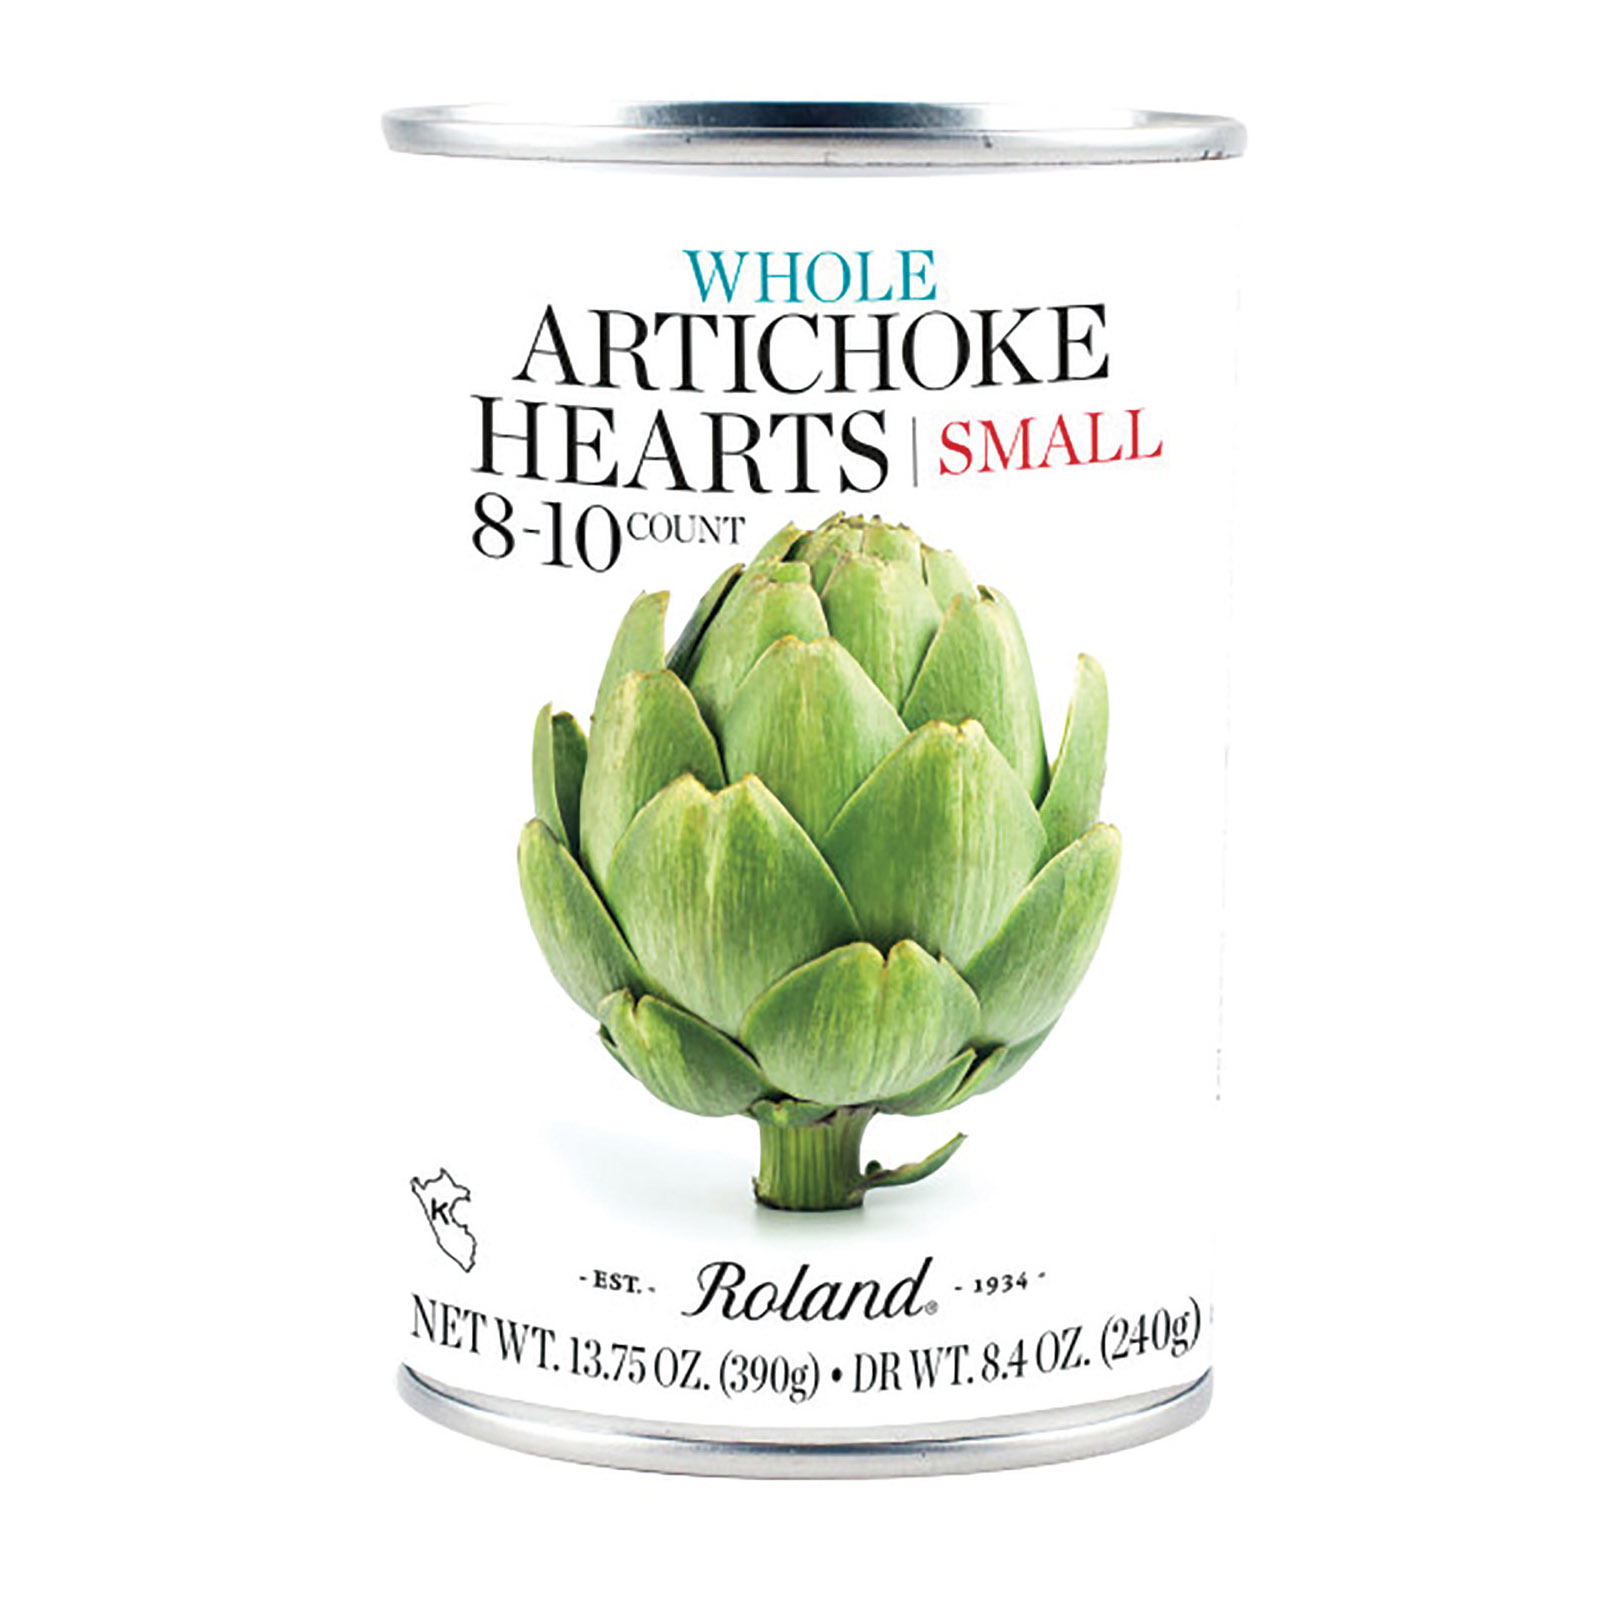 Roland Products Artichoke Hearts - 10 Count - Case of 12 - 13.75 oz